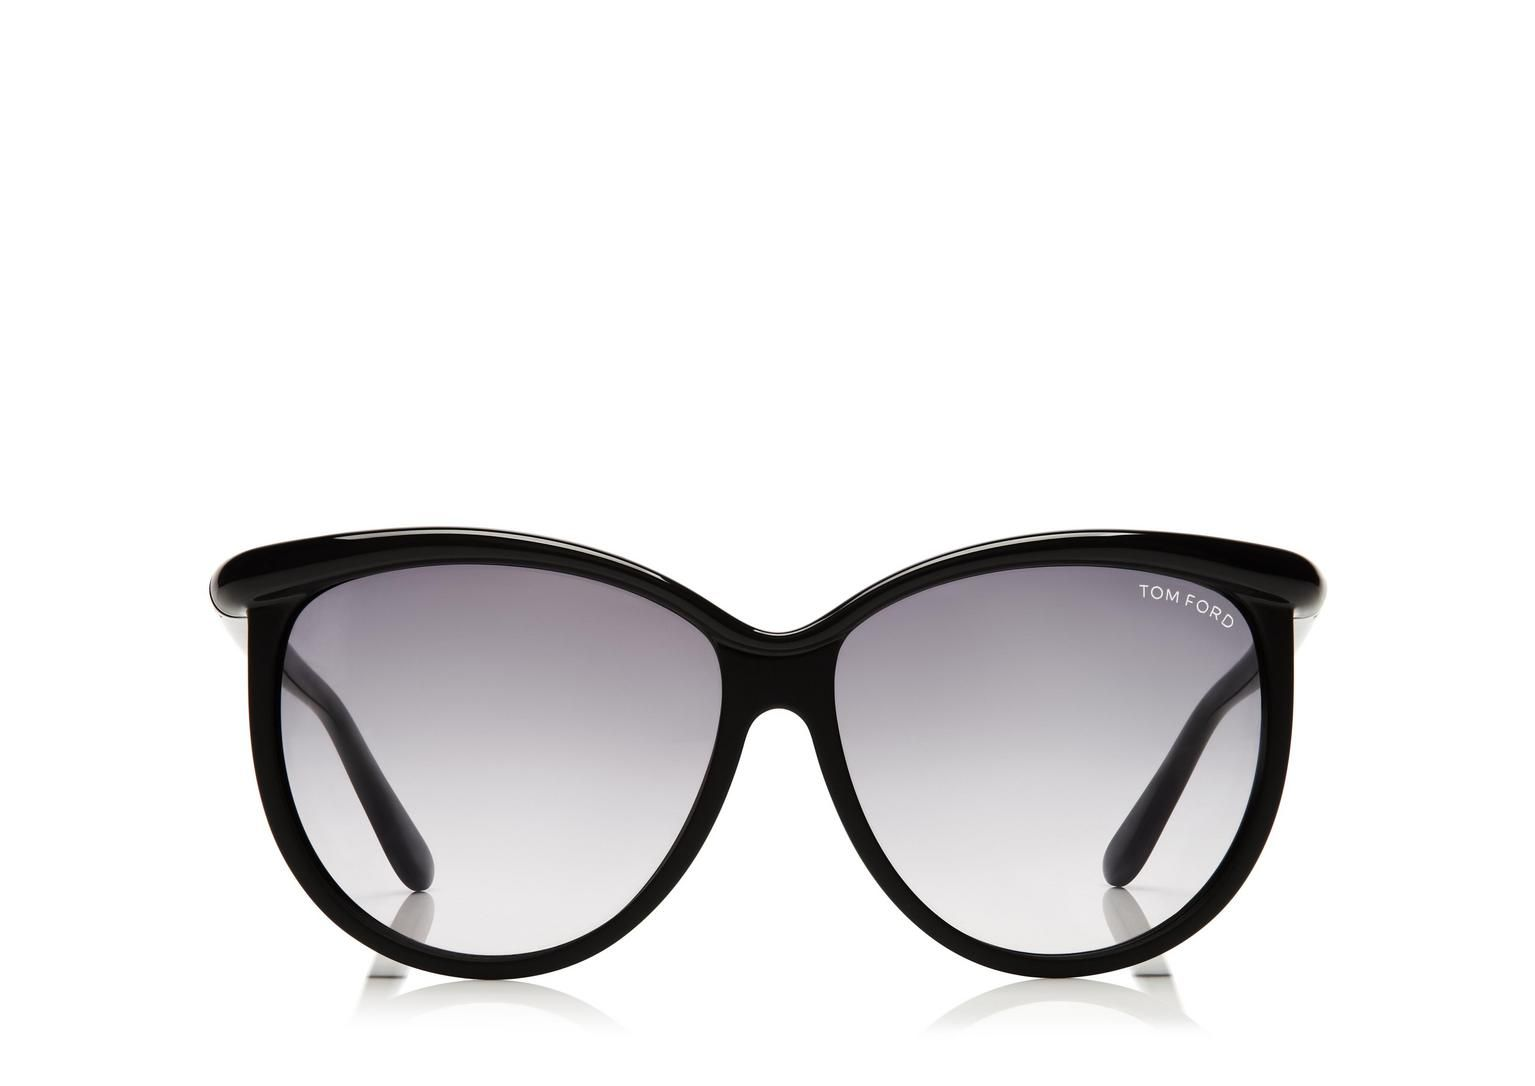 94a4a0d092cb Josephine Oversized Soft Round Sunglasses by Tom Ford make the perfect  Mothers Day gift!